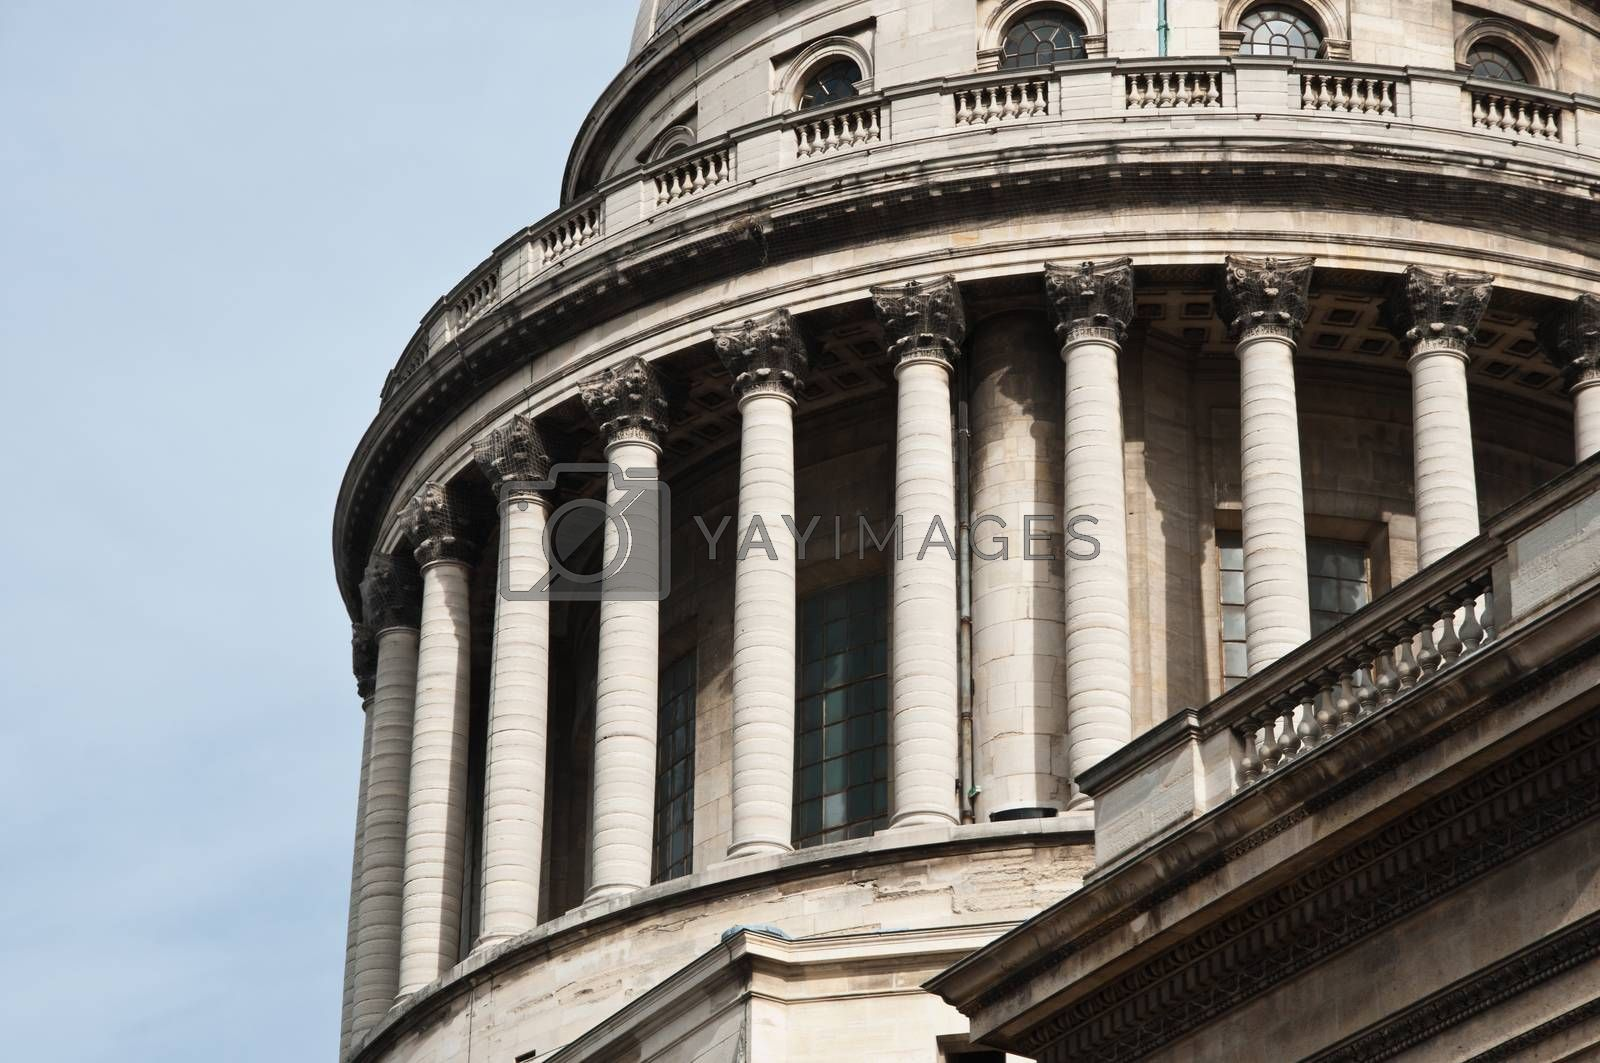 Royalty free image of Pantheon monument in Paris - France by NeydtStock